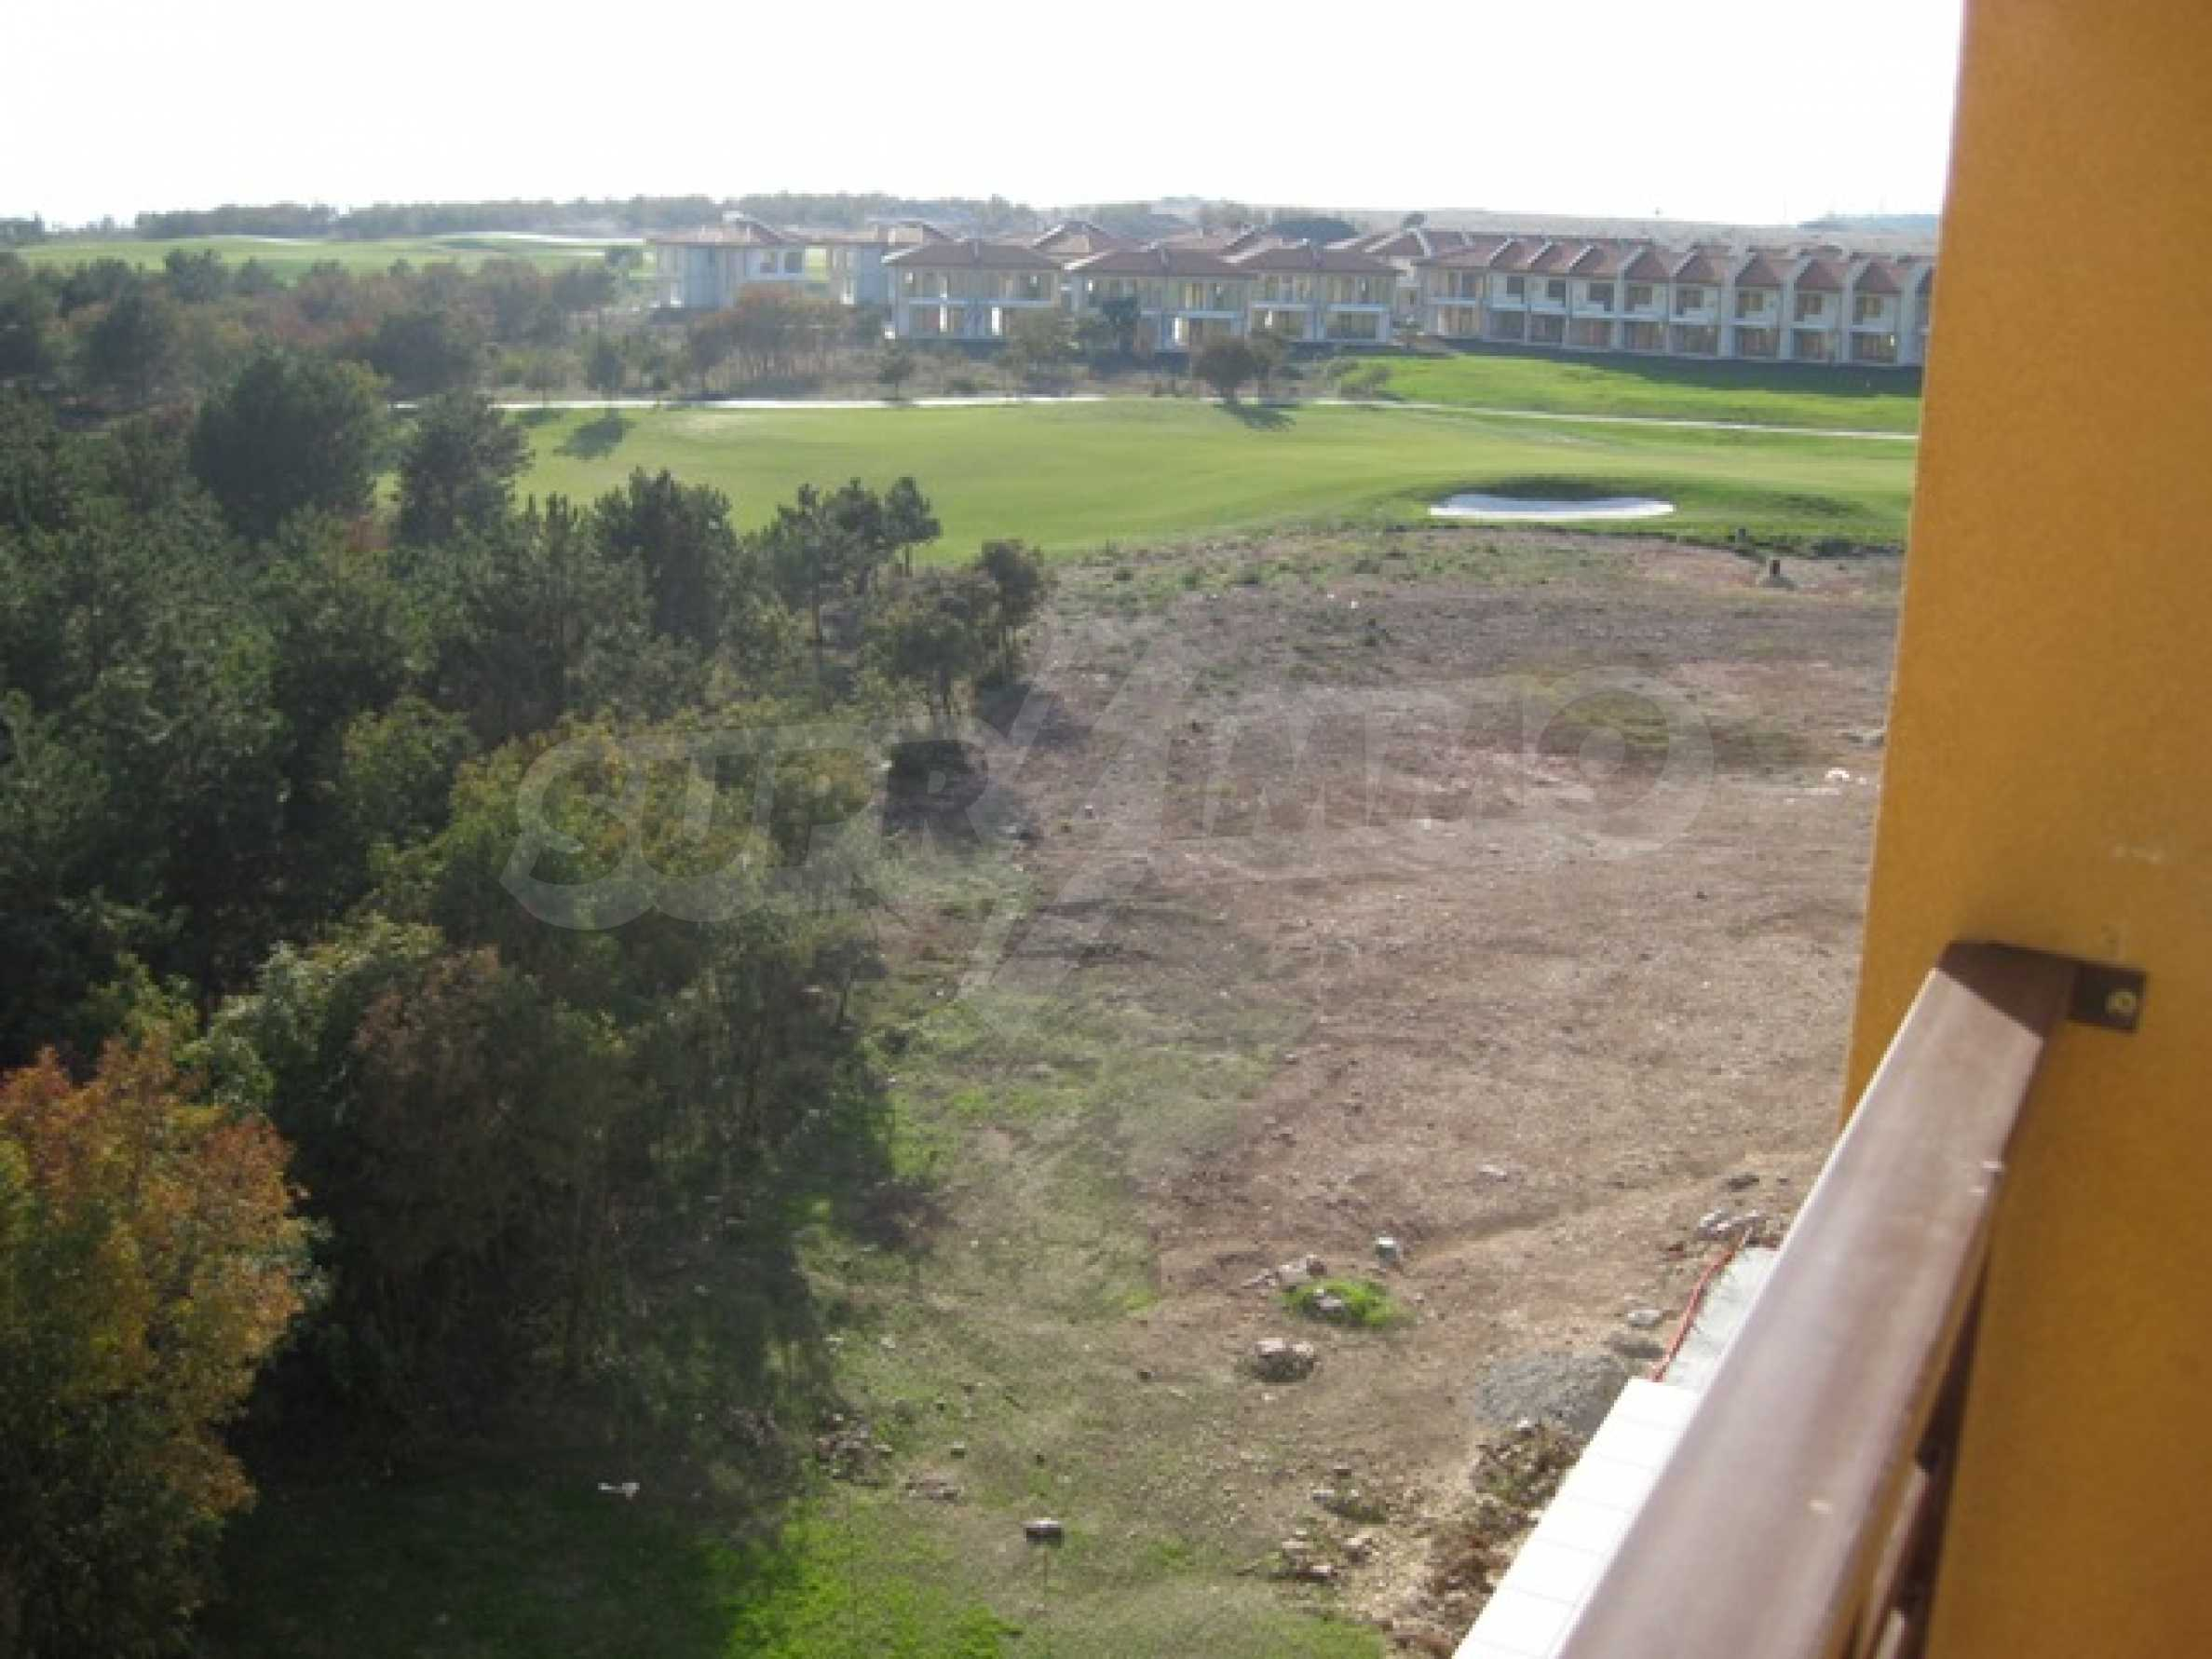 1-bed penthouse apartment in Lighhouse Golf Resort  2